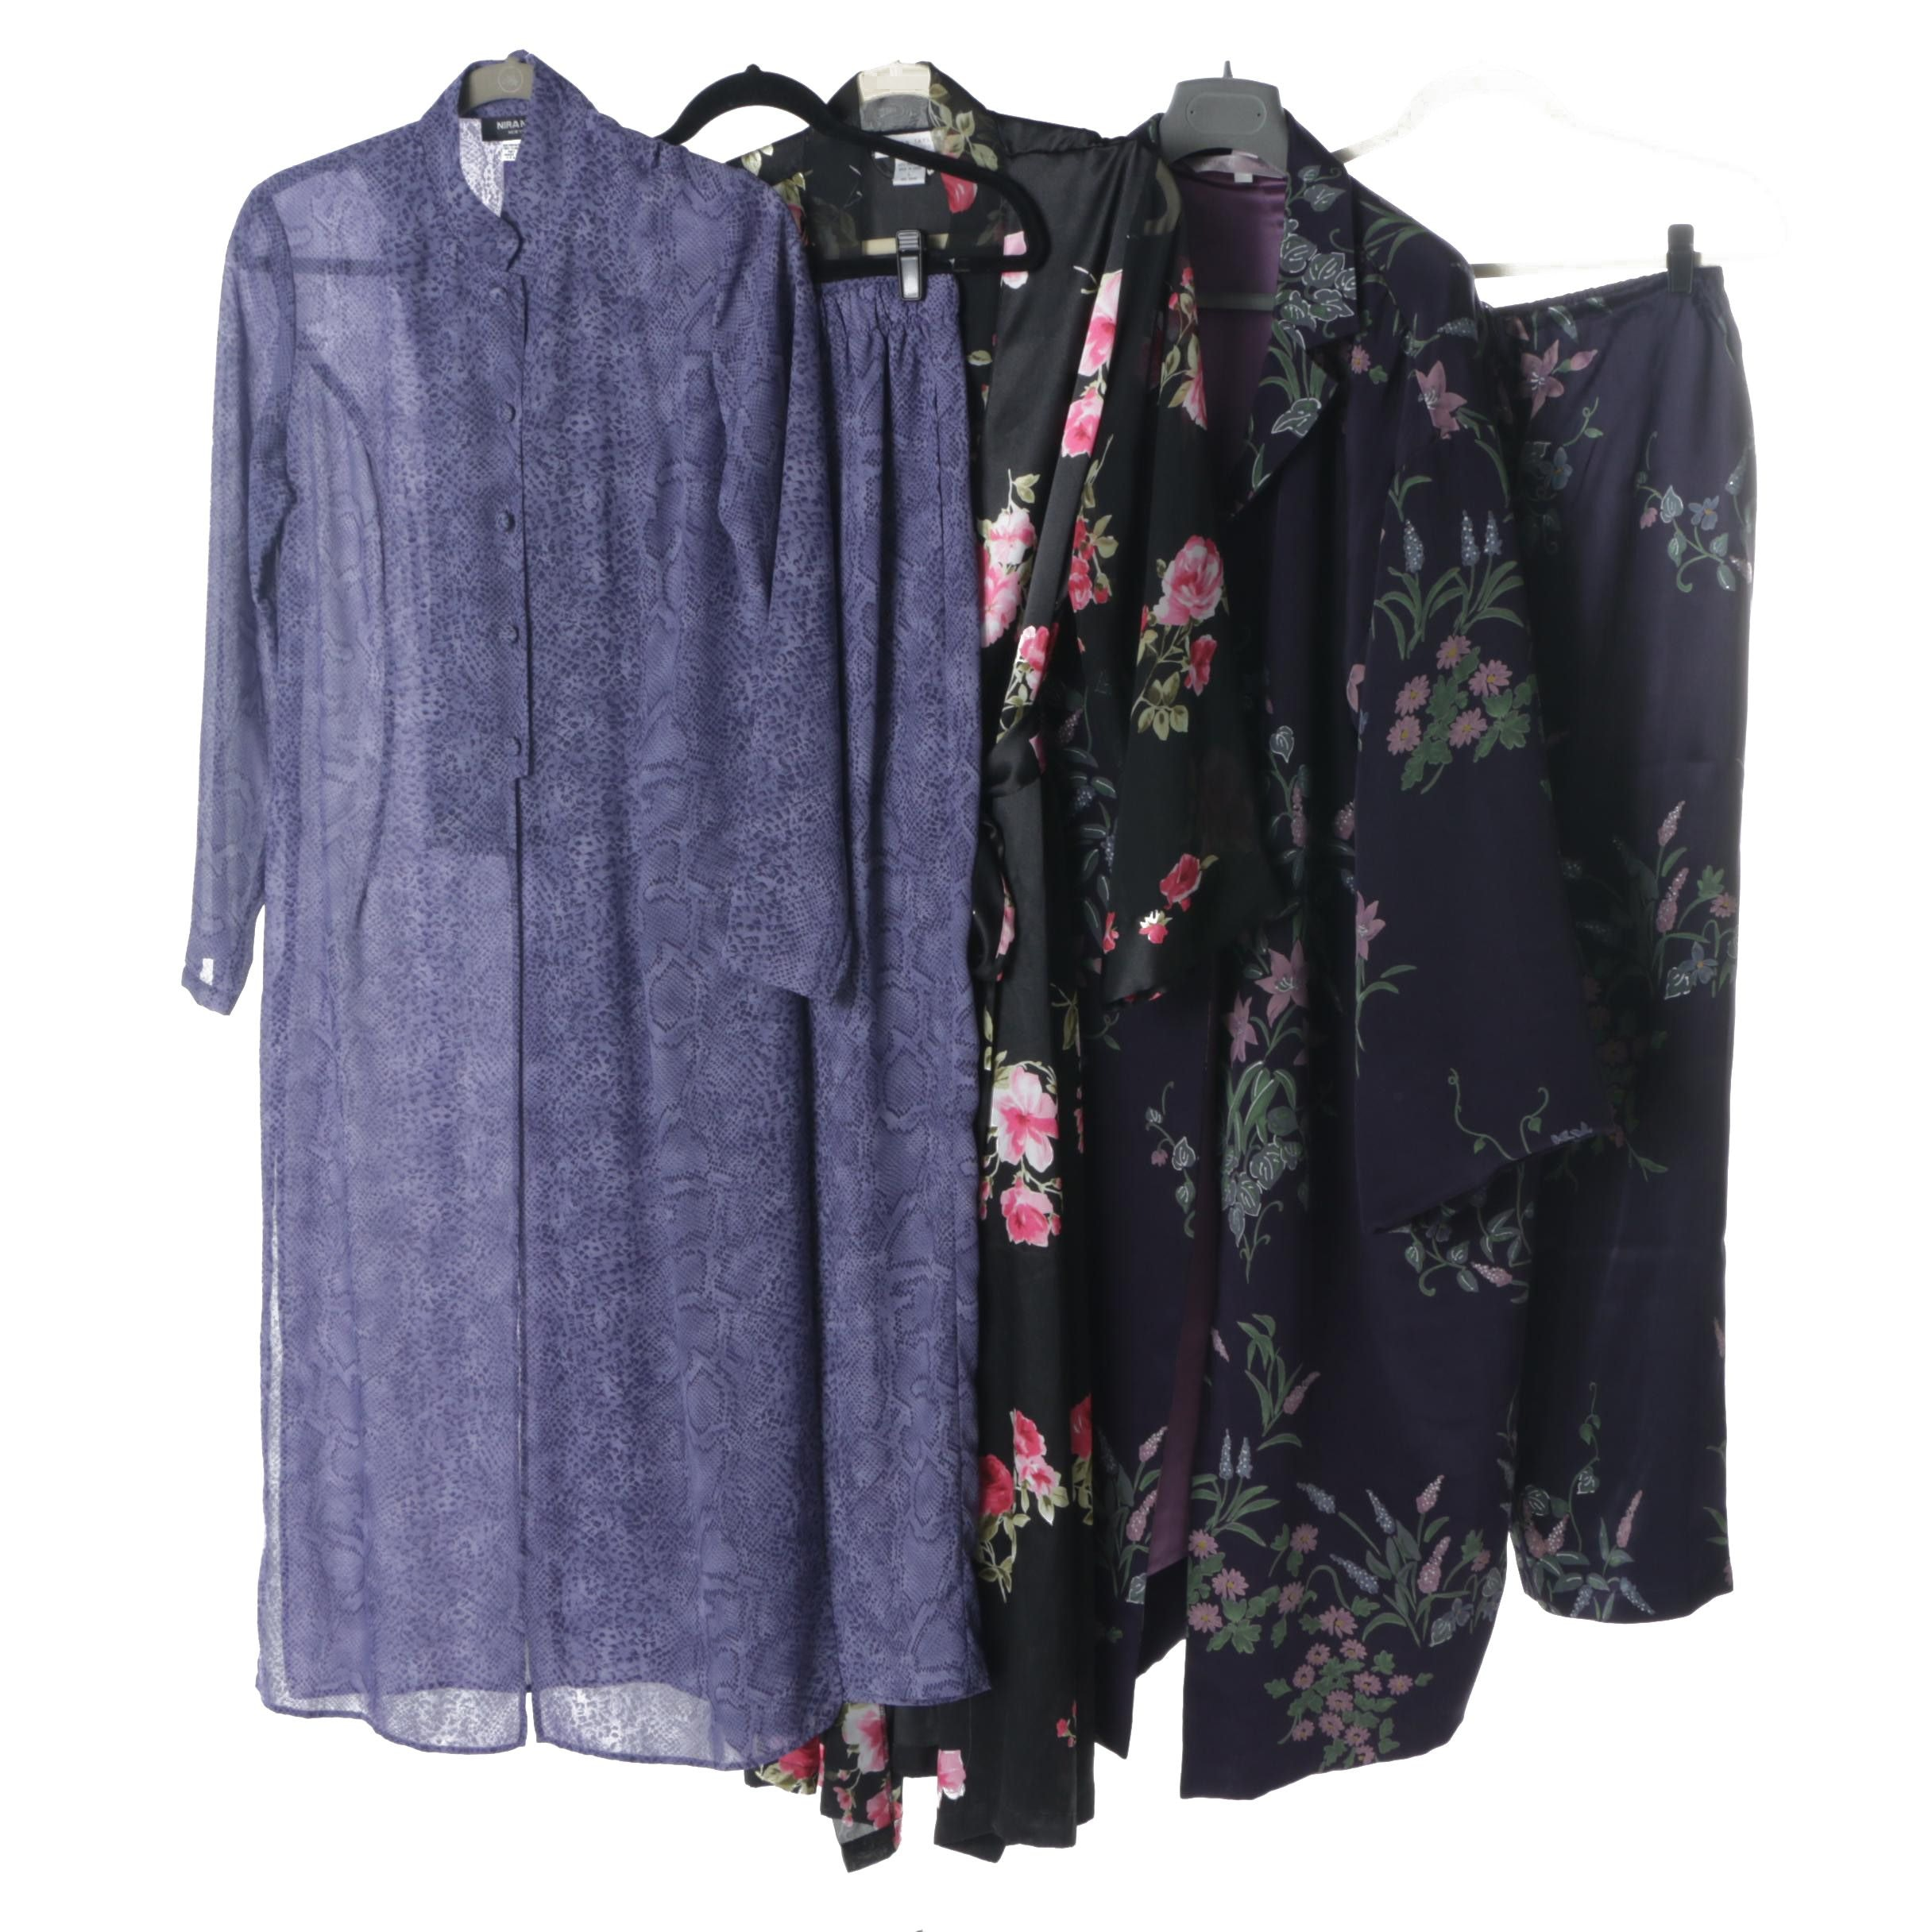 Women's Sleepwear and Robes Including Victoria's Secret